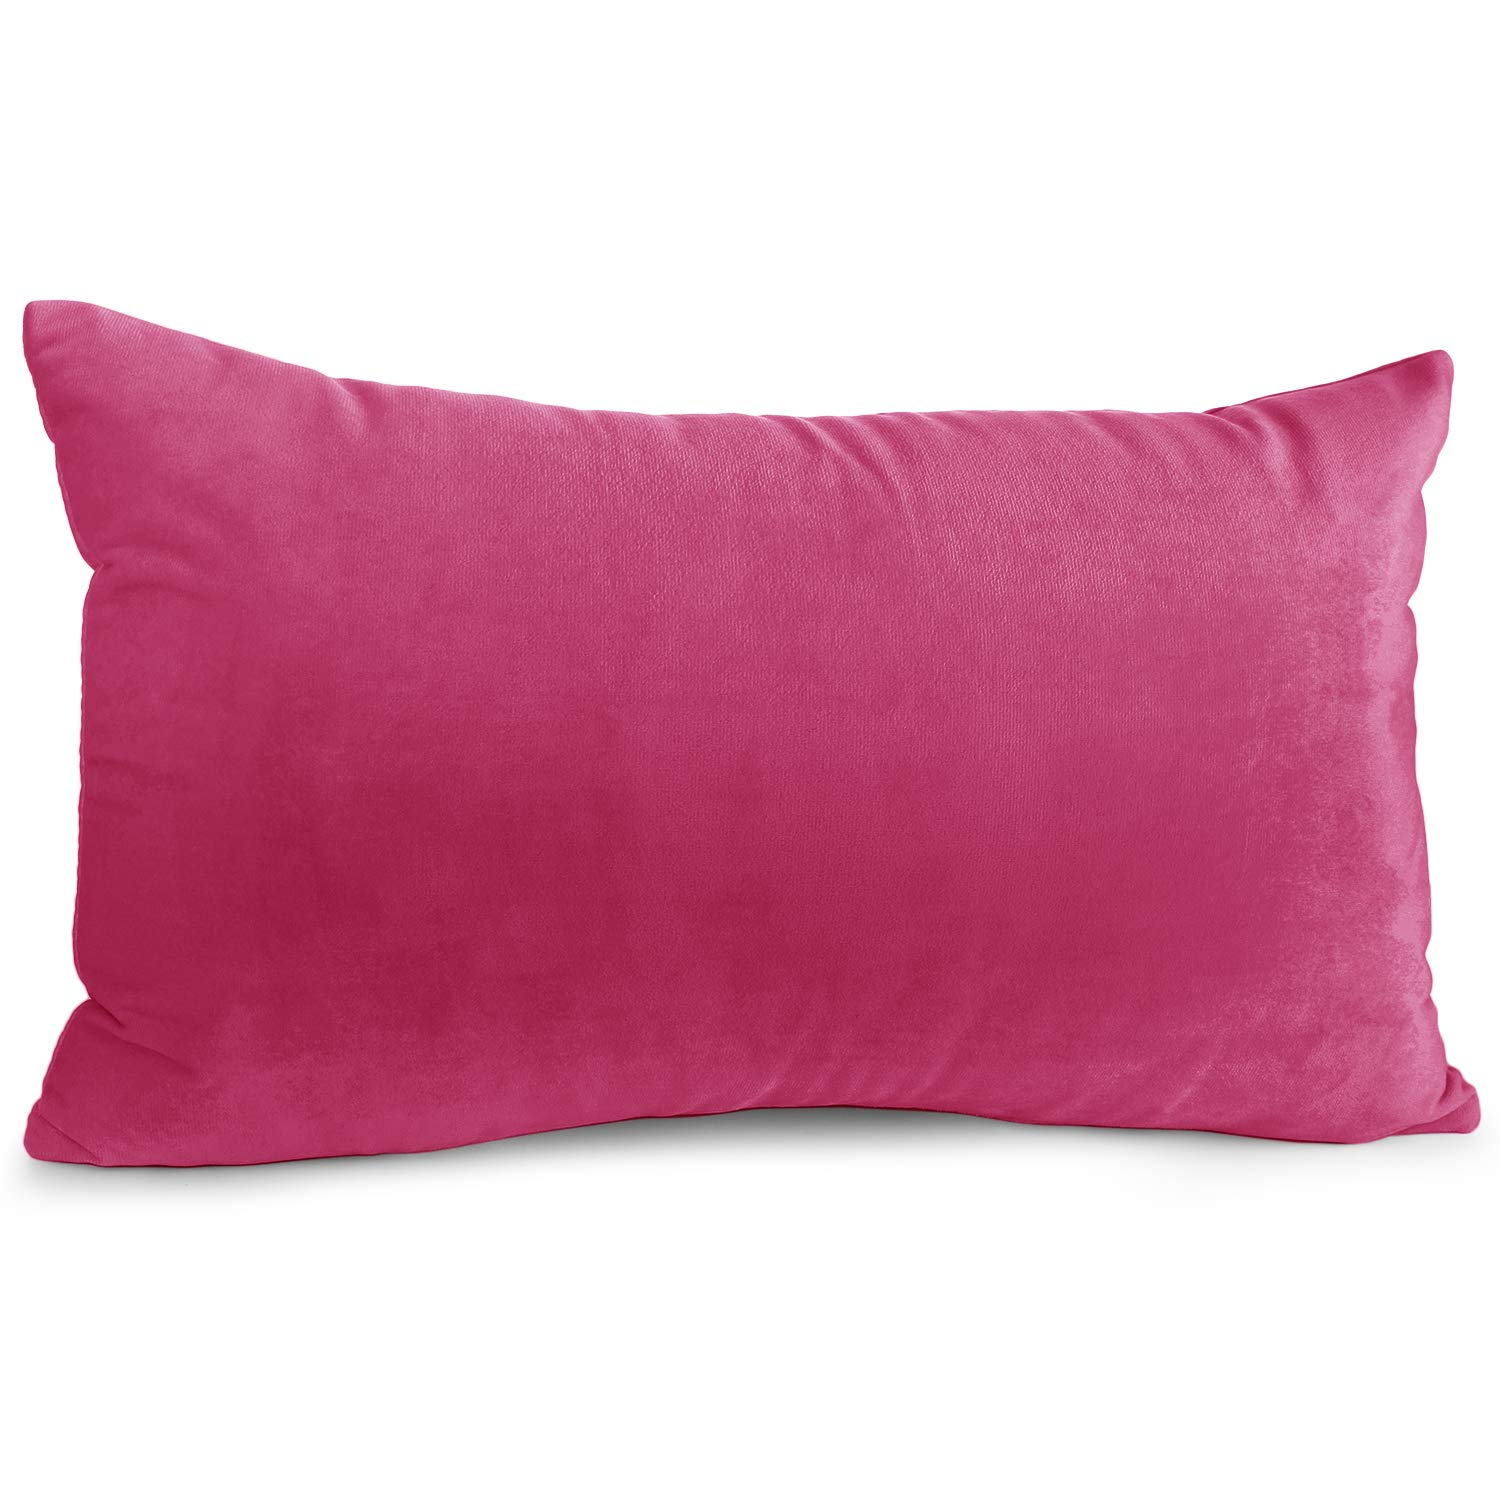 """Nestl Bedding Throw Pillow Cover 12"""" x 20"""" Soft Square Decorative Throw Pillow Covers Cozy Velvet Cushion Case for Sofa Couch Bedroom - Hot Pink"""